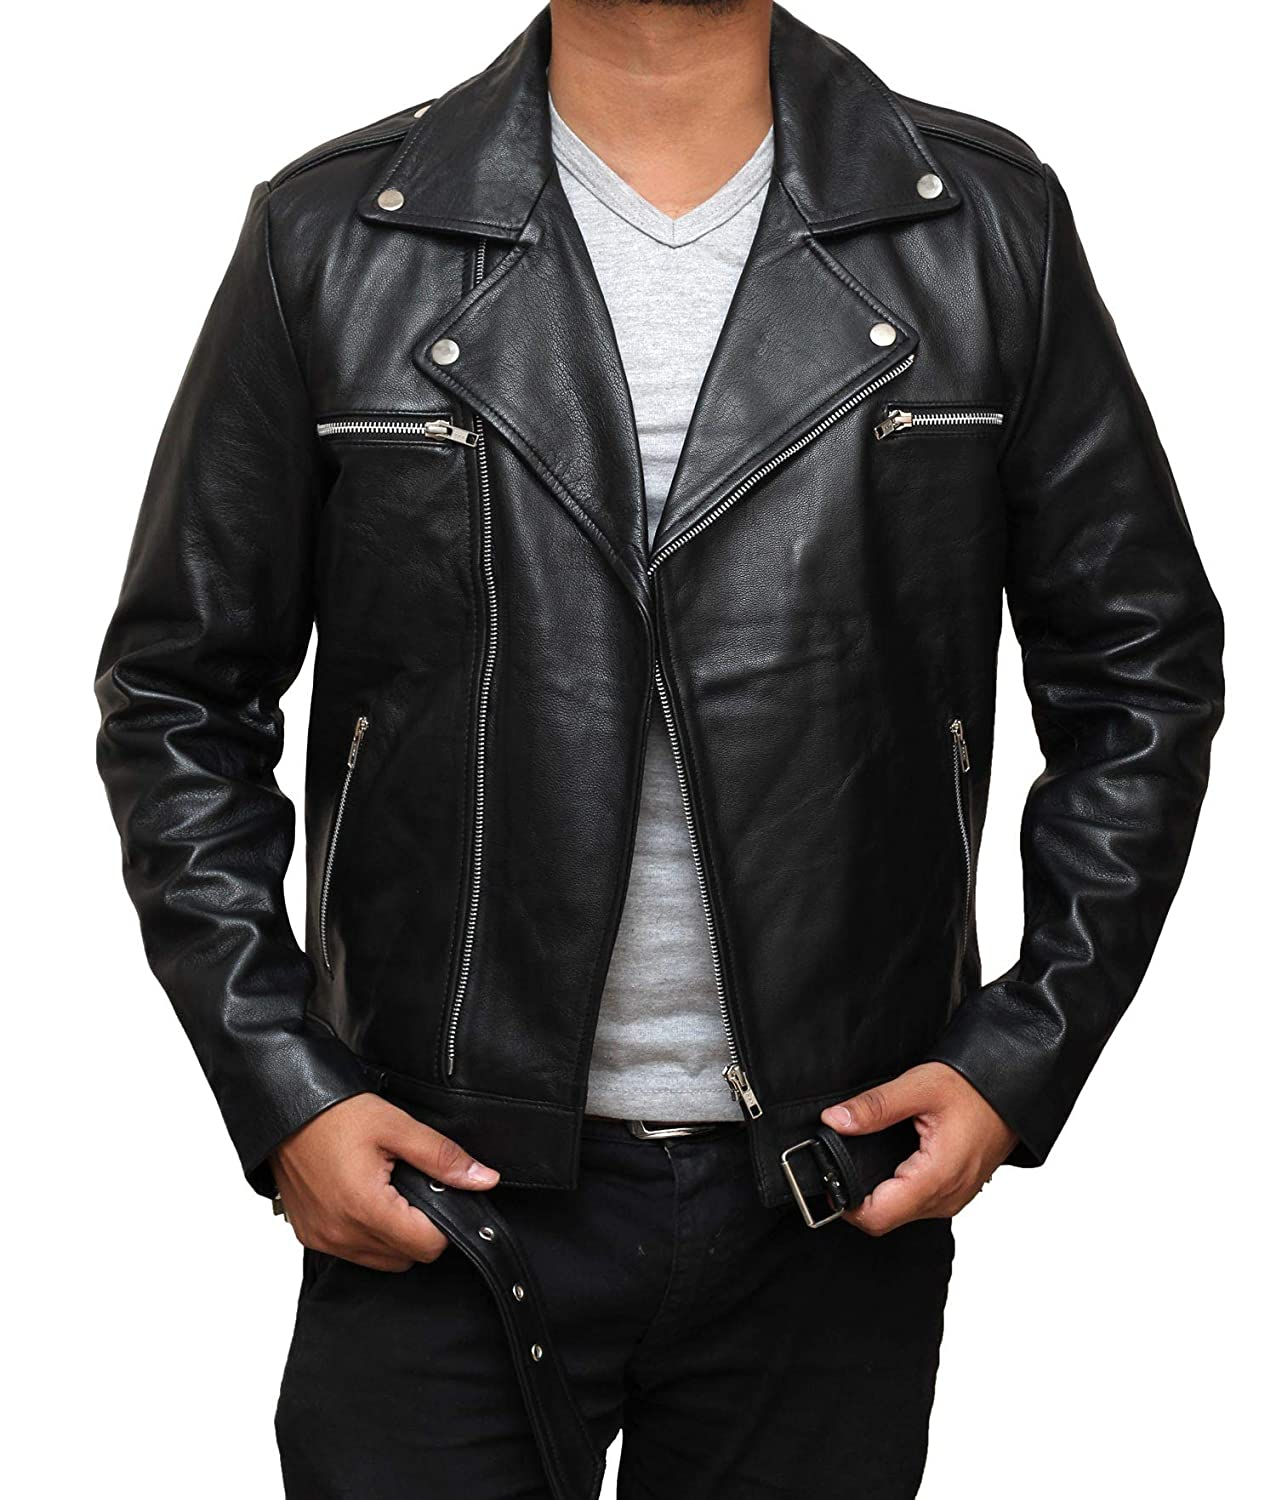 Motorcycle Mens Leather Jacket - Genuine Lambskin Biker Black Leather Jacket Men 7567981